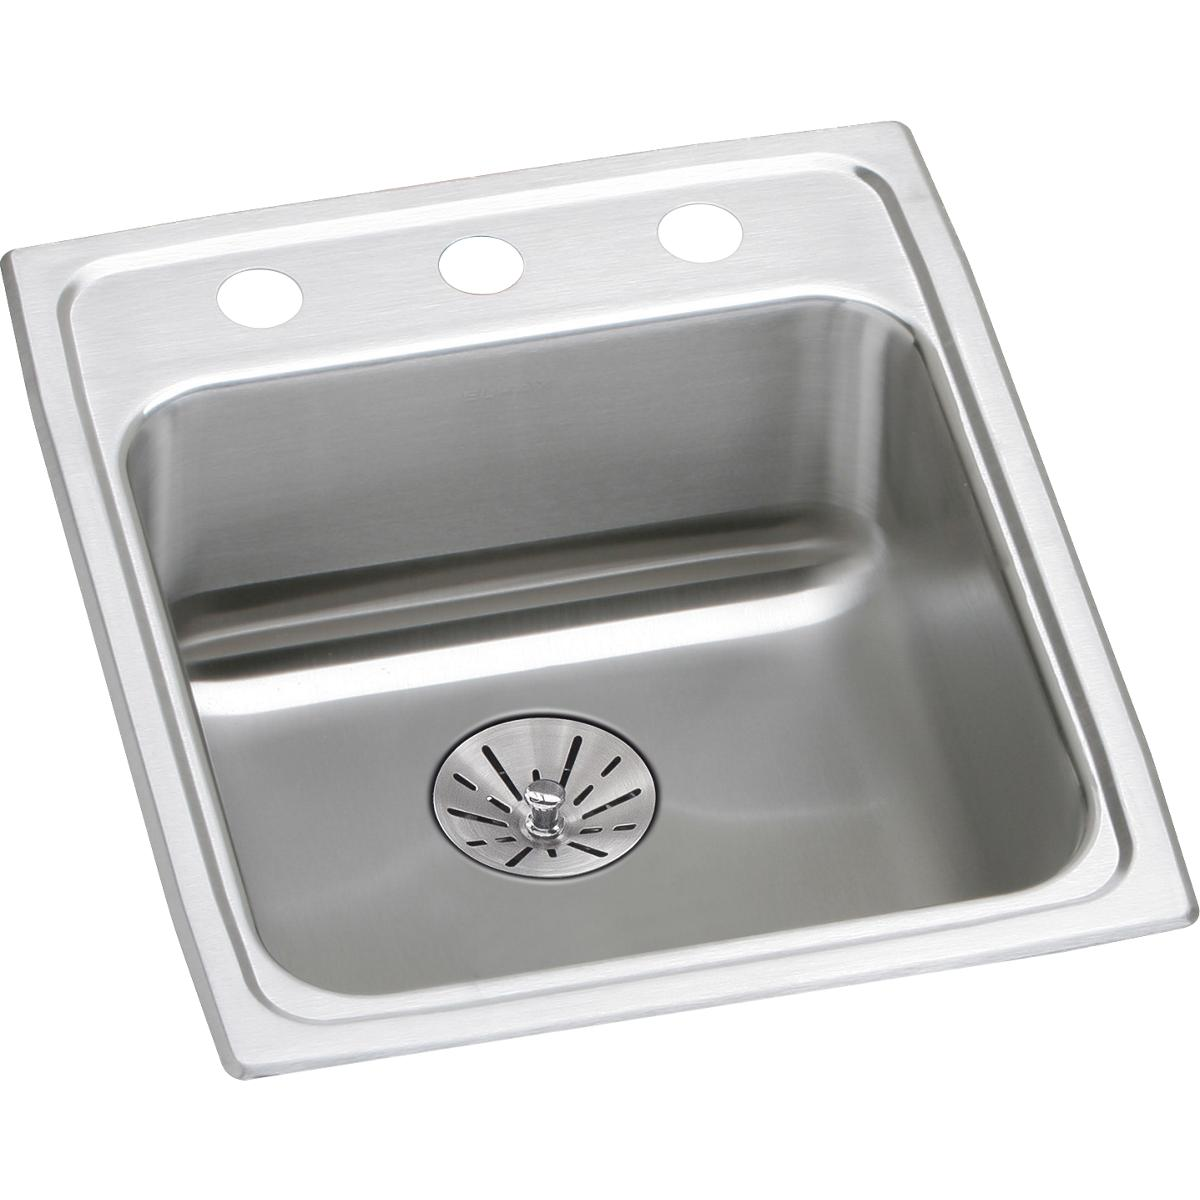 "Elkay Lustertone Classic Stainless Steel 17"" x 20"" x 6-1/2"", Single Bowl Drop-in ADA Sink with Perfect Drain"